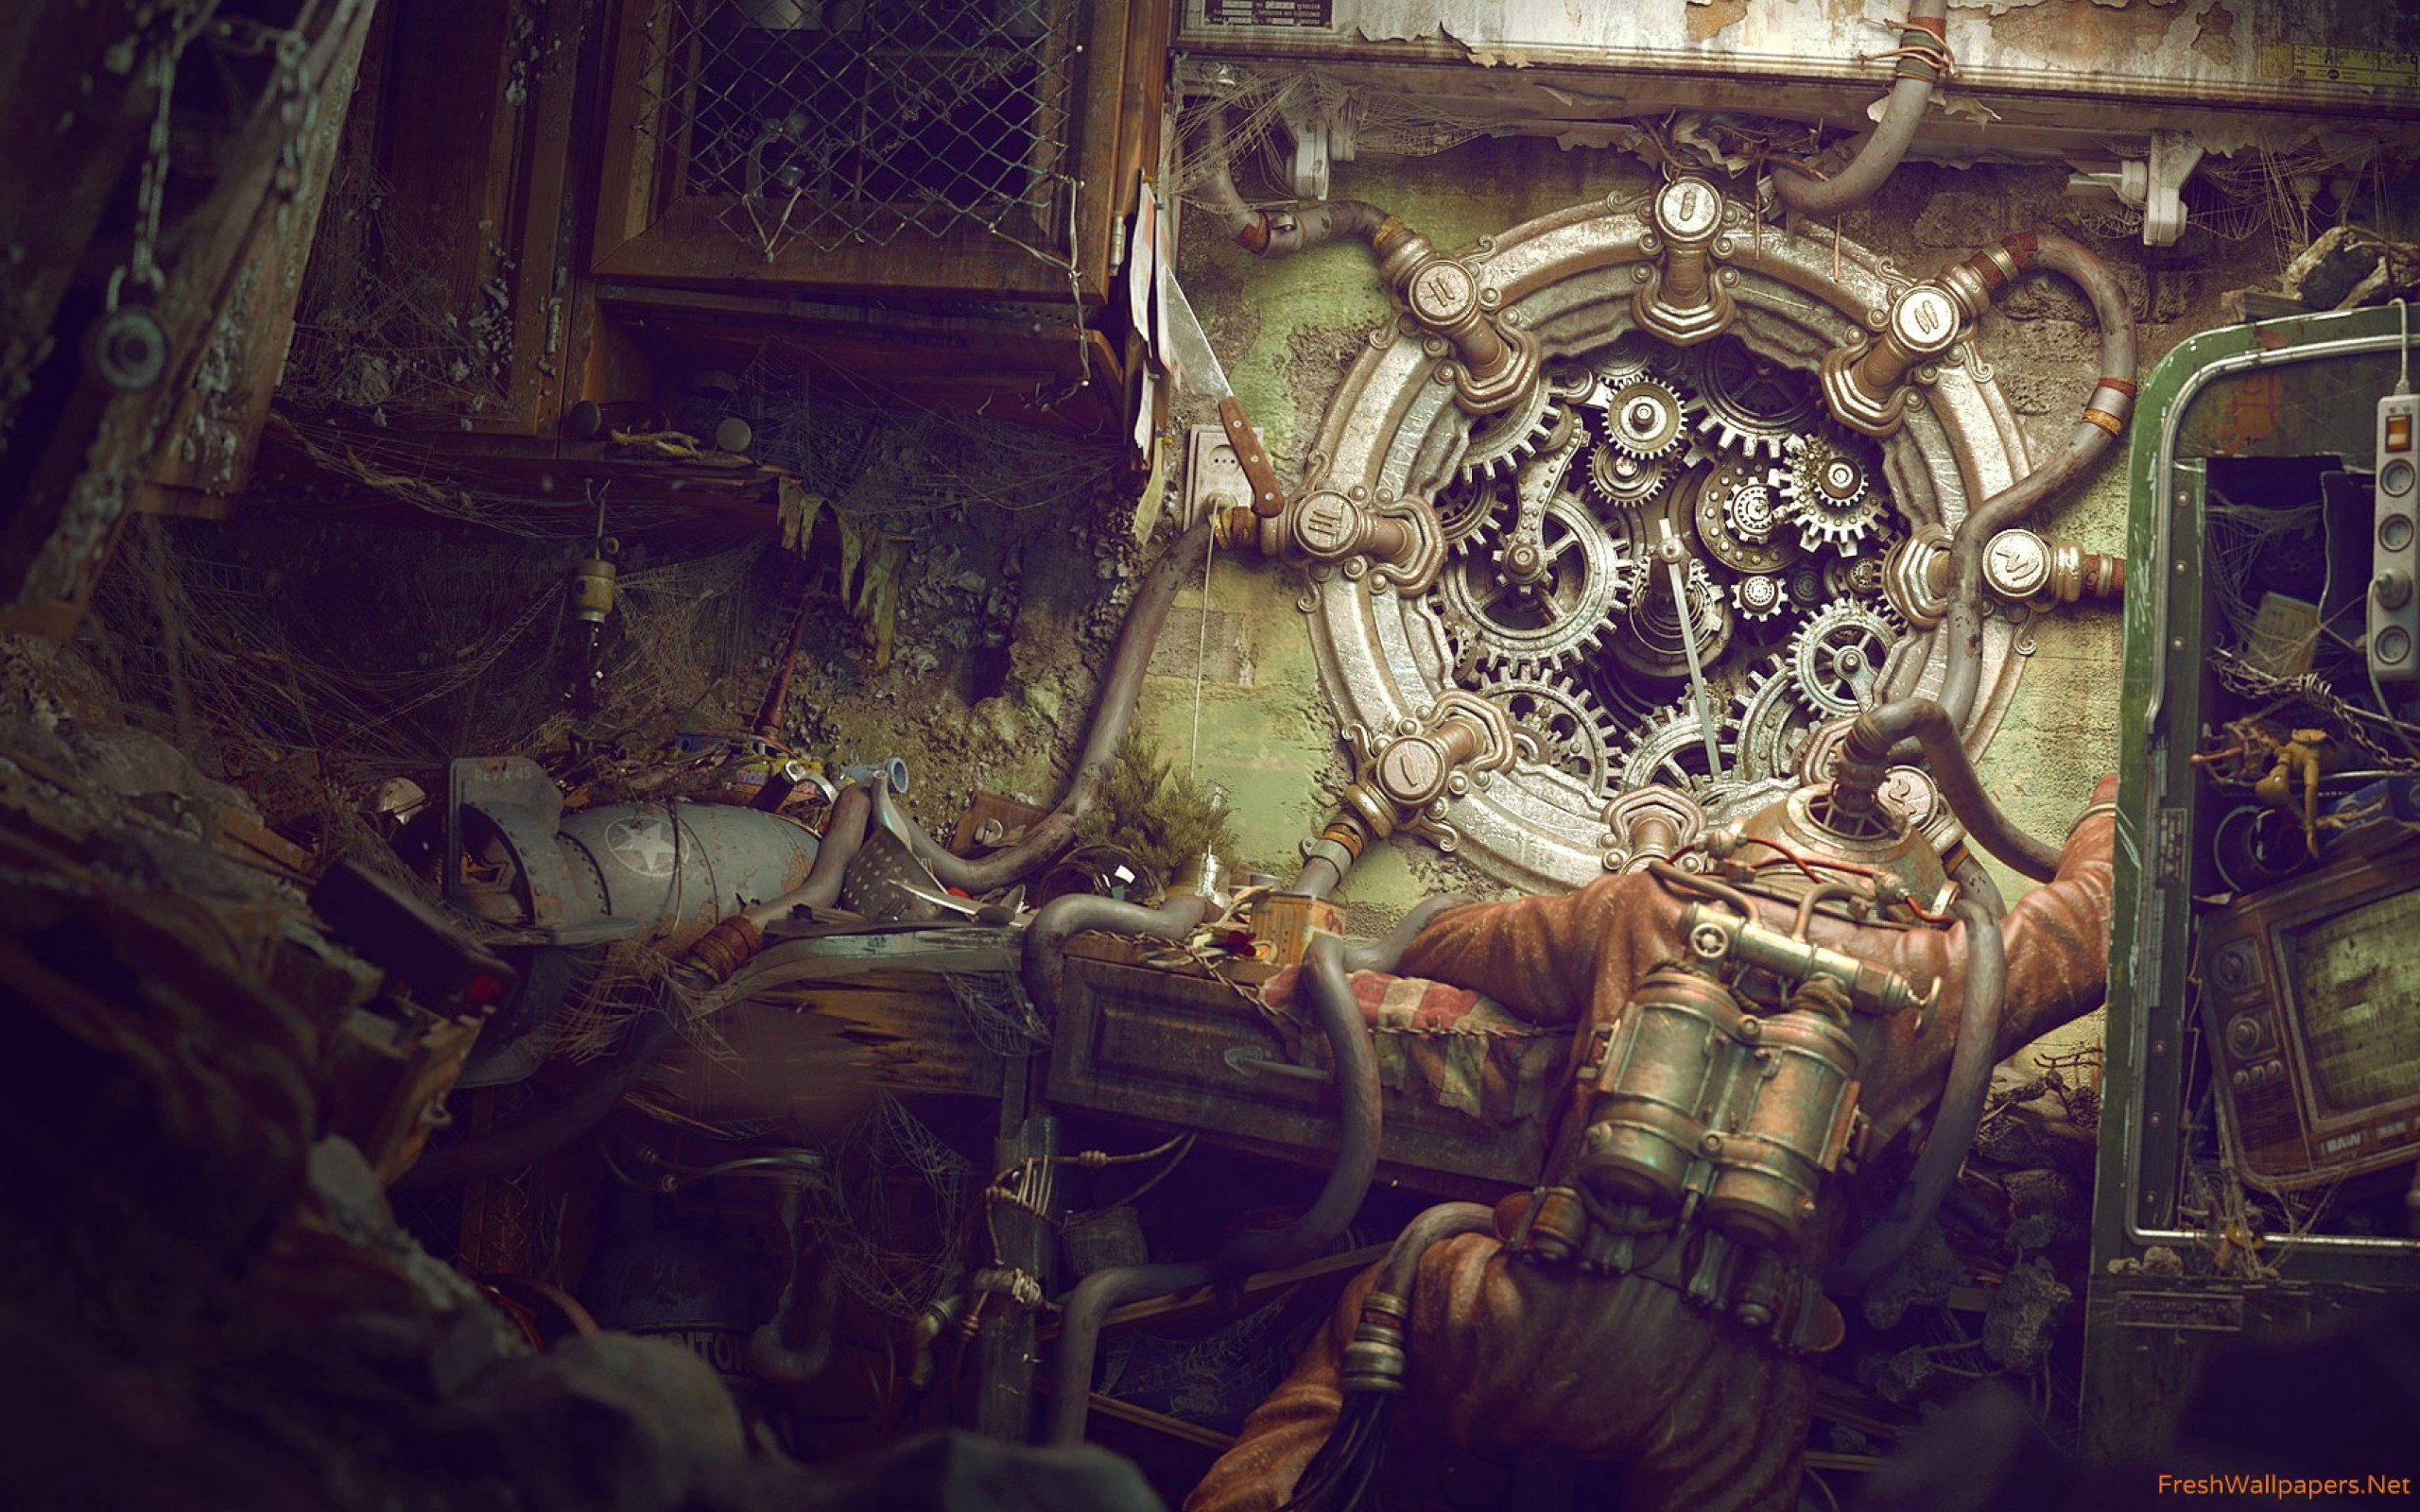 Res: 2560x1600, The Coolest Wallpaper Ever Awesome Steampunk Wallpaper Pipes Wallpapers  Freshwallpapers